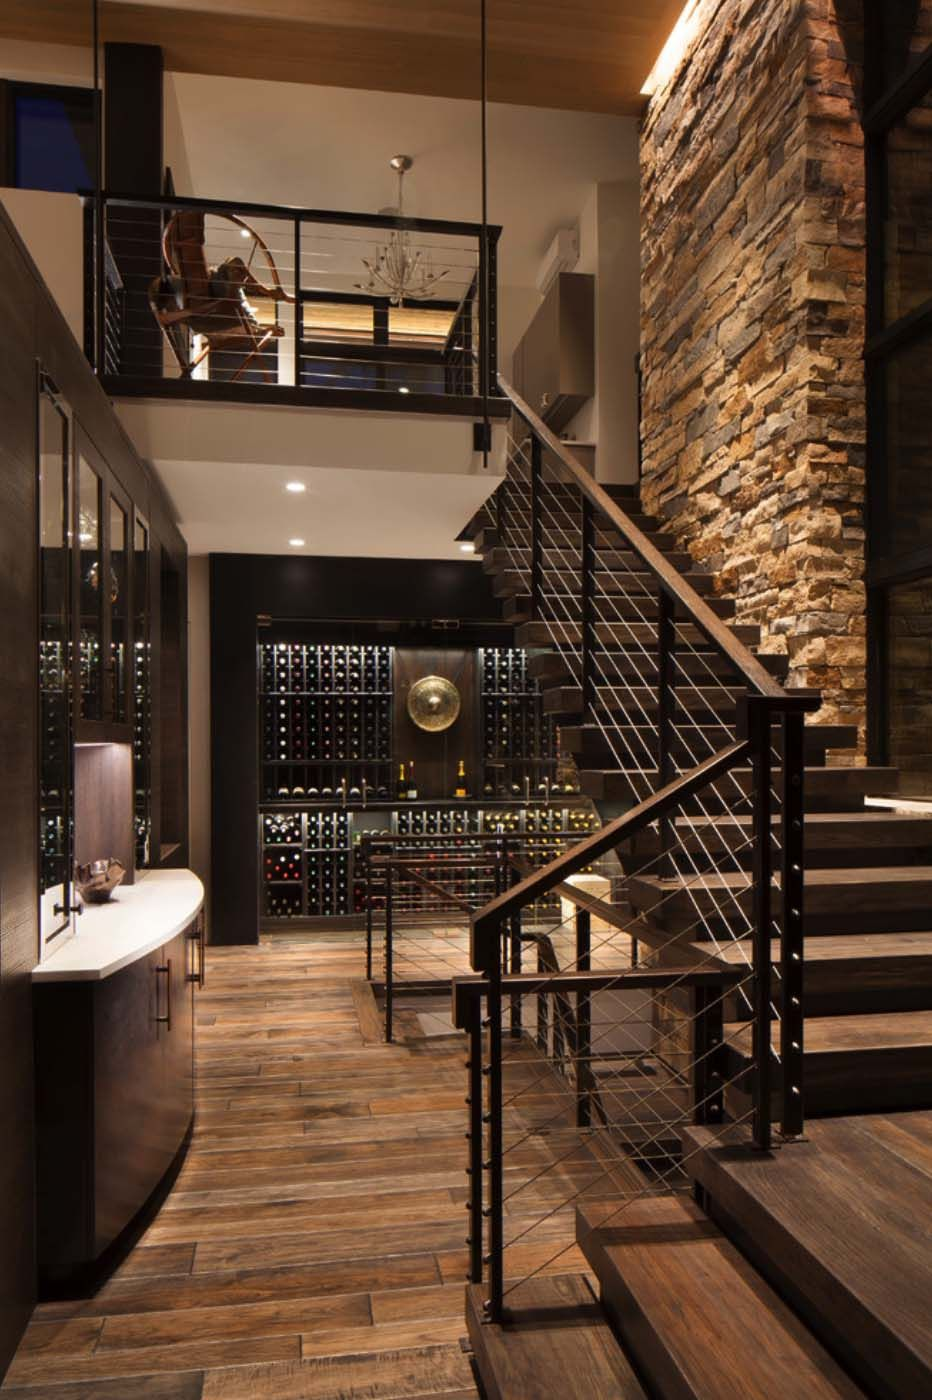 Contemporary Home Design. Beautiful Home Interior. Browns, Stone Wall,  Staircase, All Very Nicely Done.